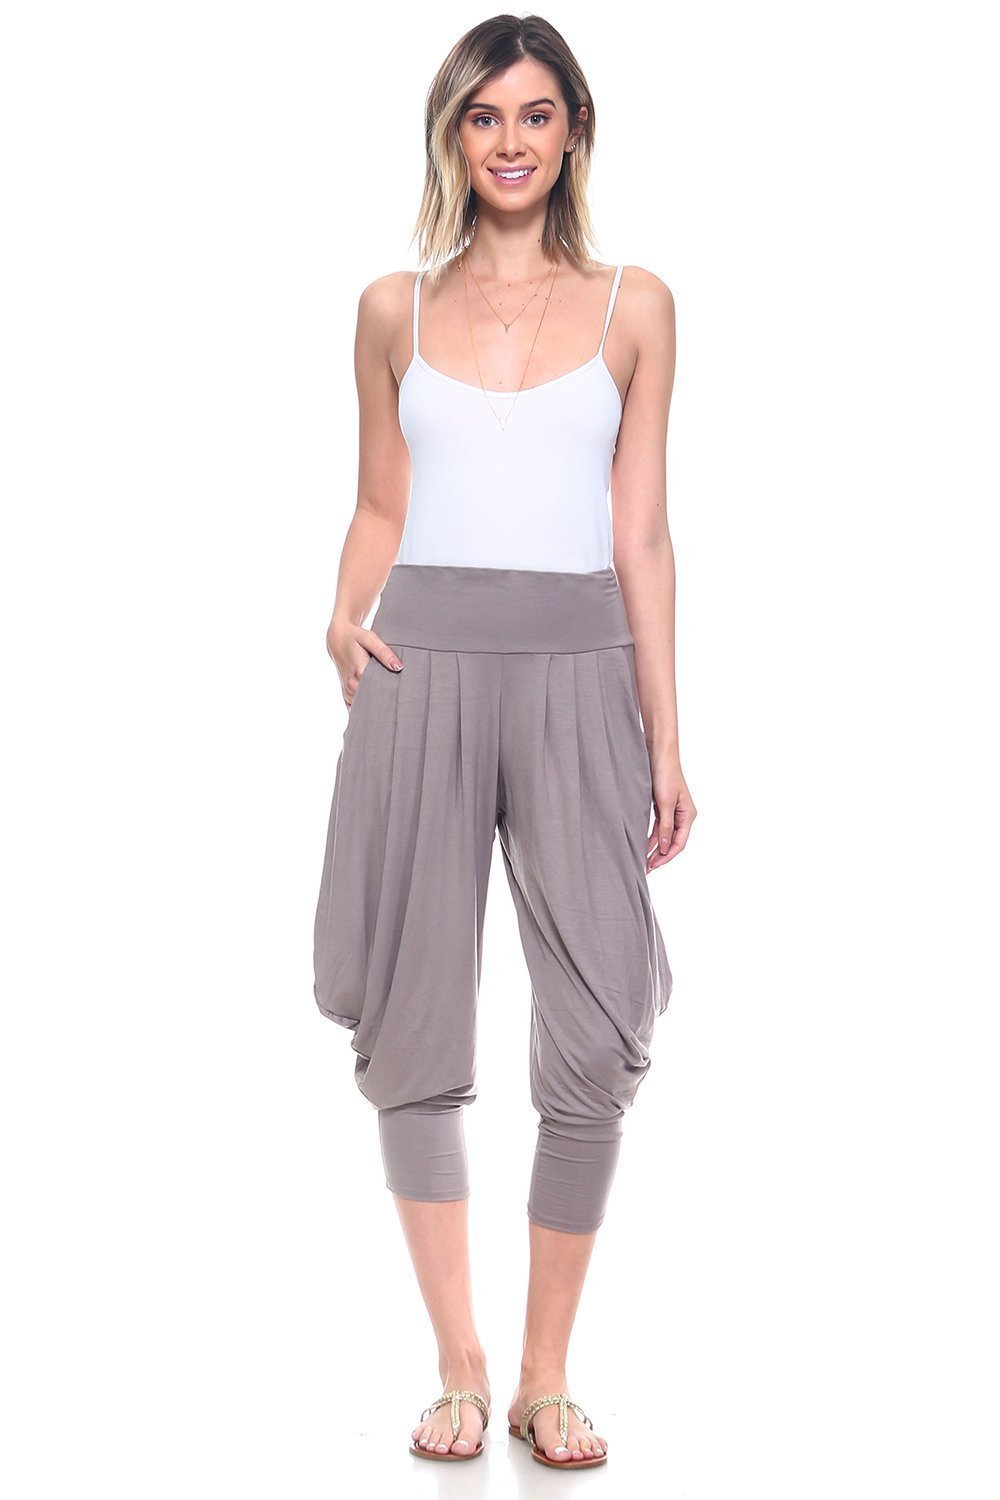 Mocha Simplicitie Women/'s Soft Yoga Sports Dance Harem Pants Made in USA